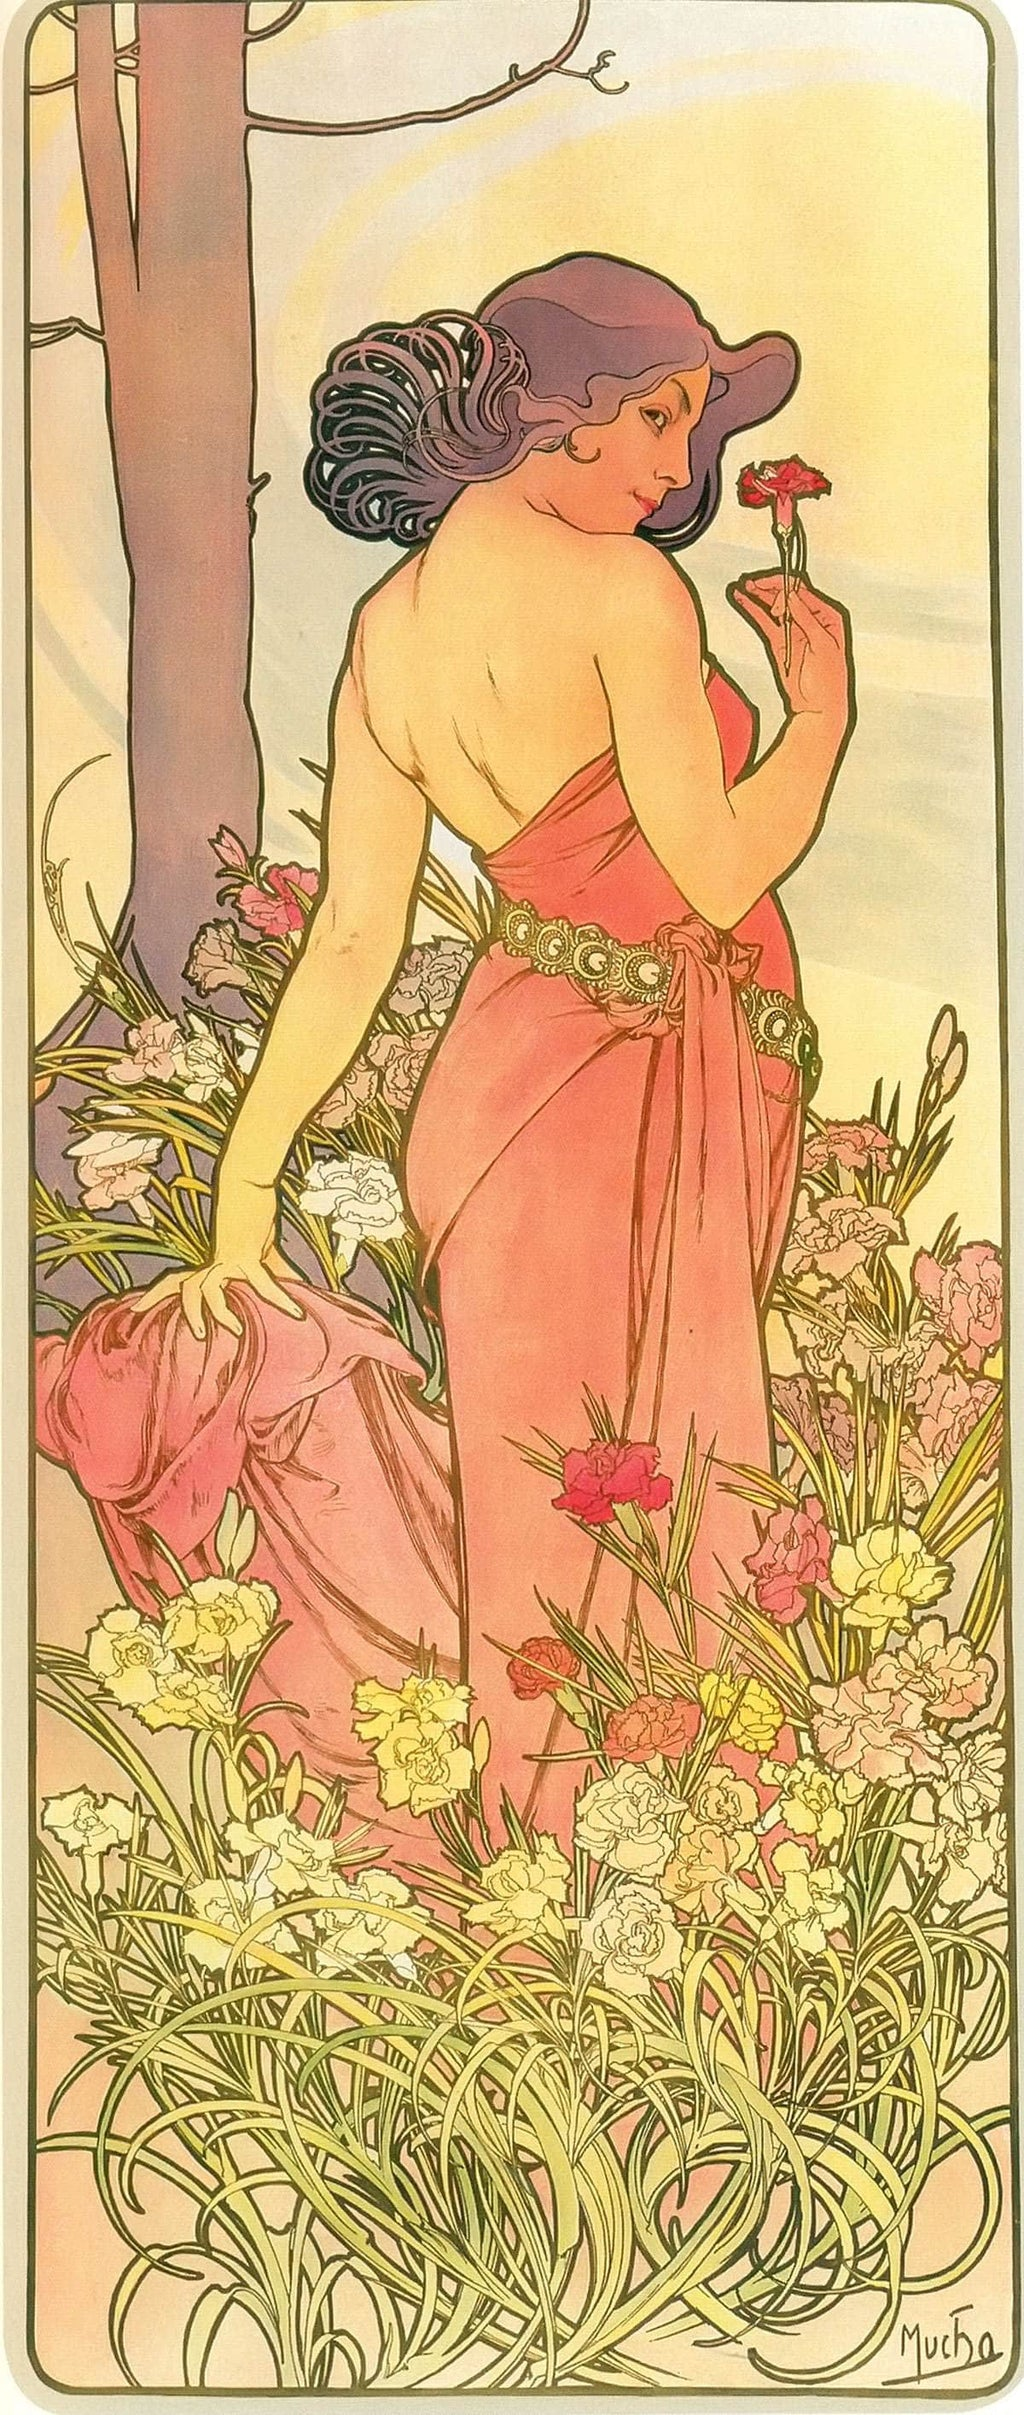 The Flowers Carnation by Alphonse Mucha